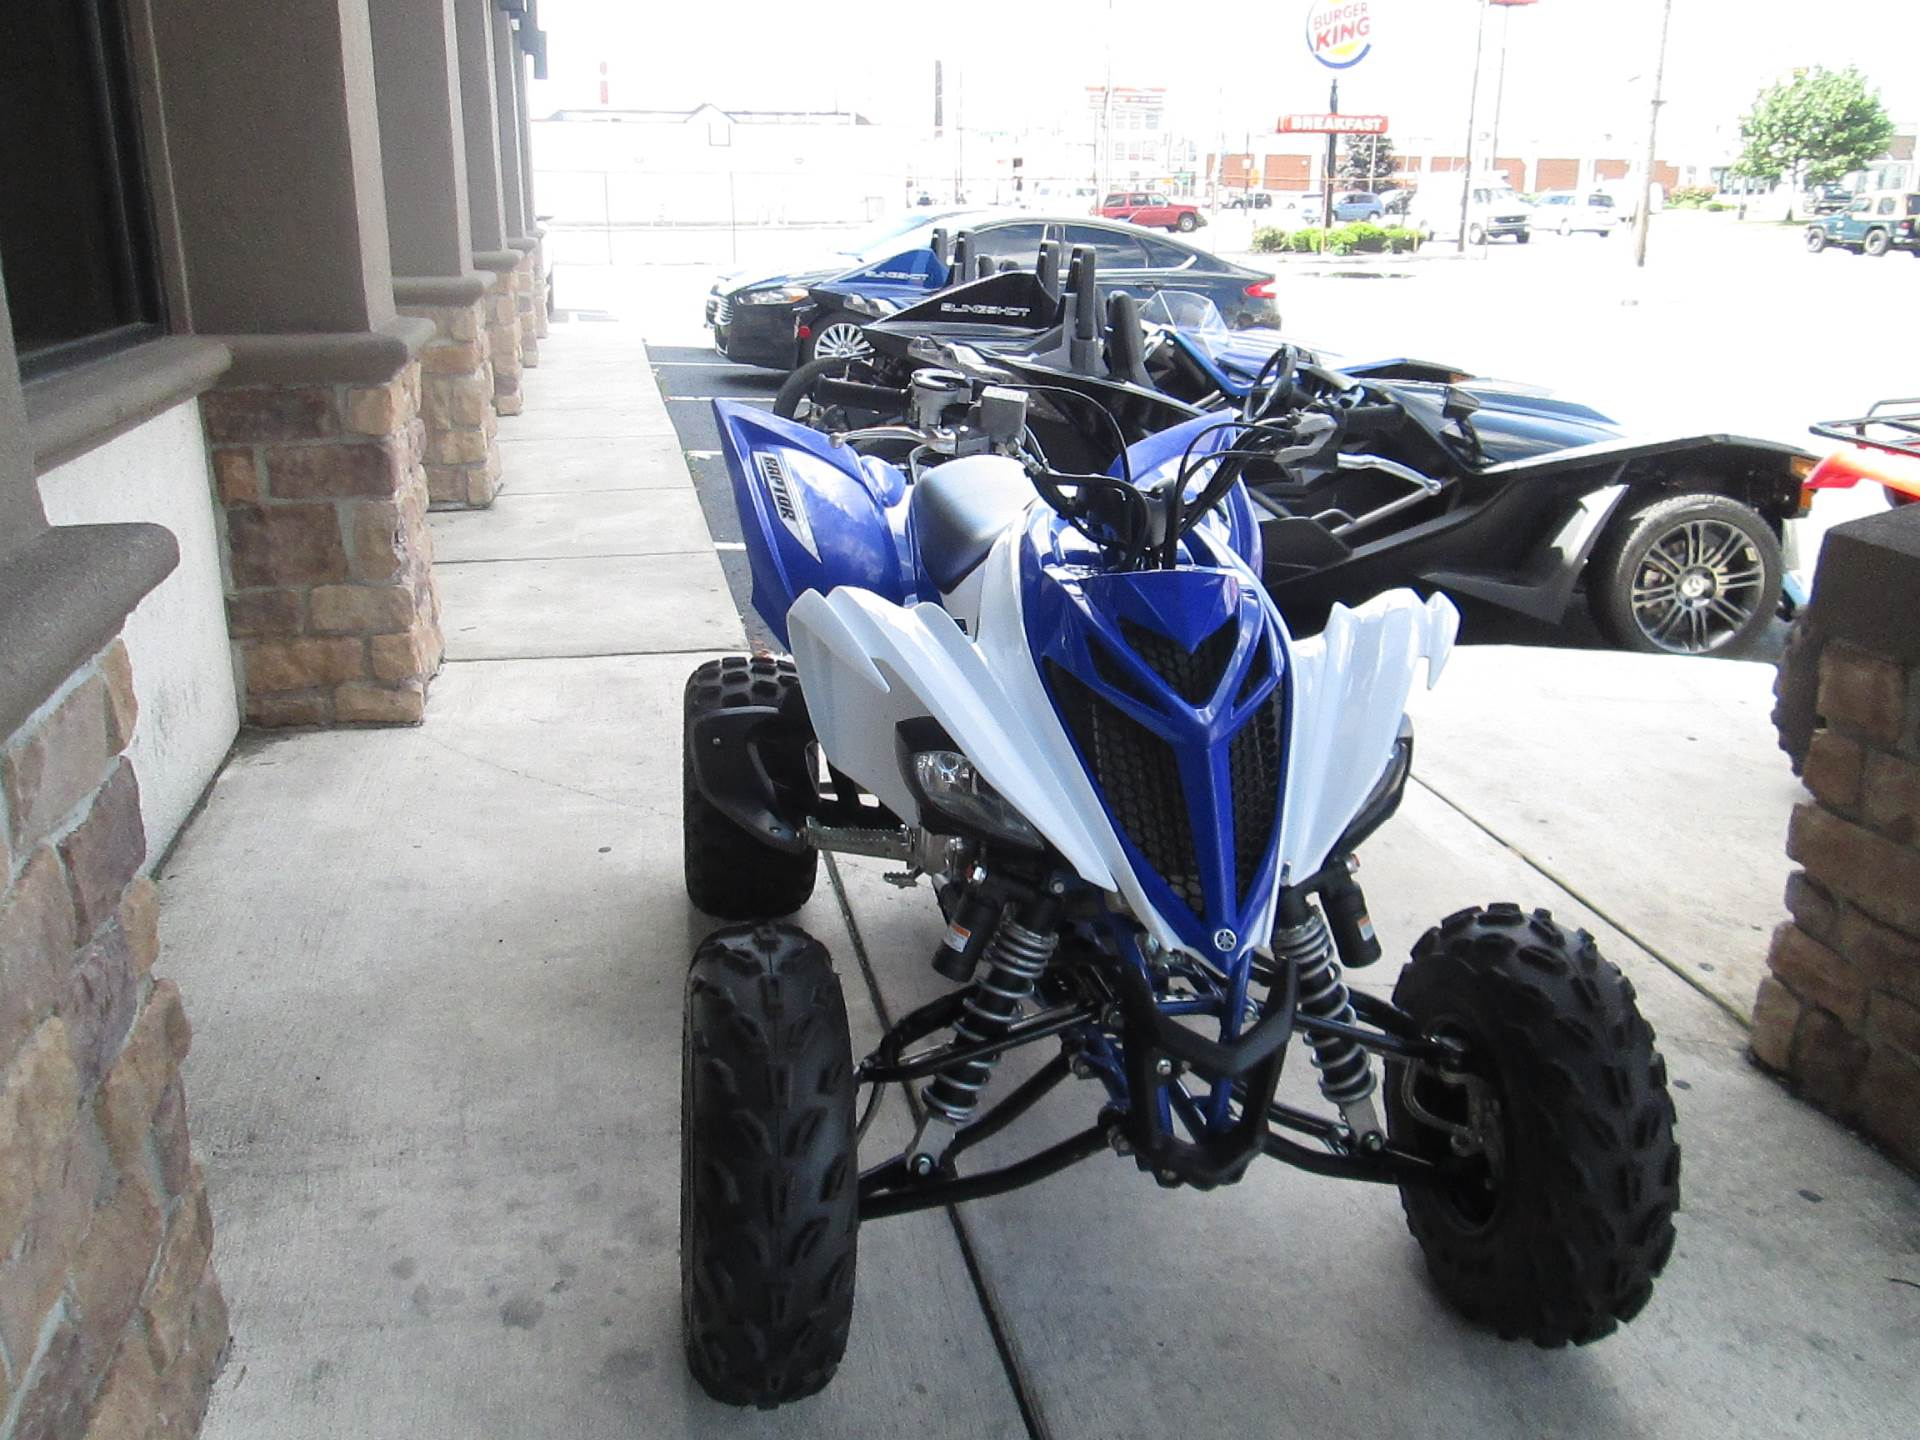 2016 Yamaha Raptor 700 for sale 45129